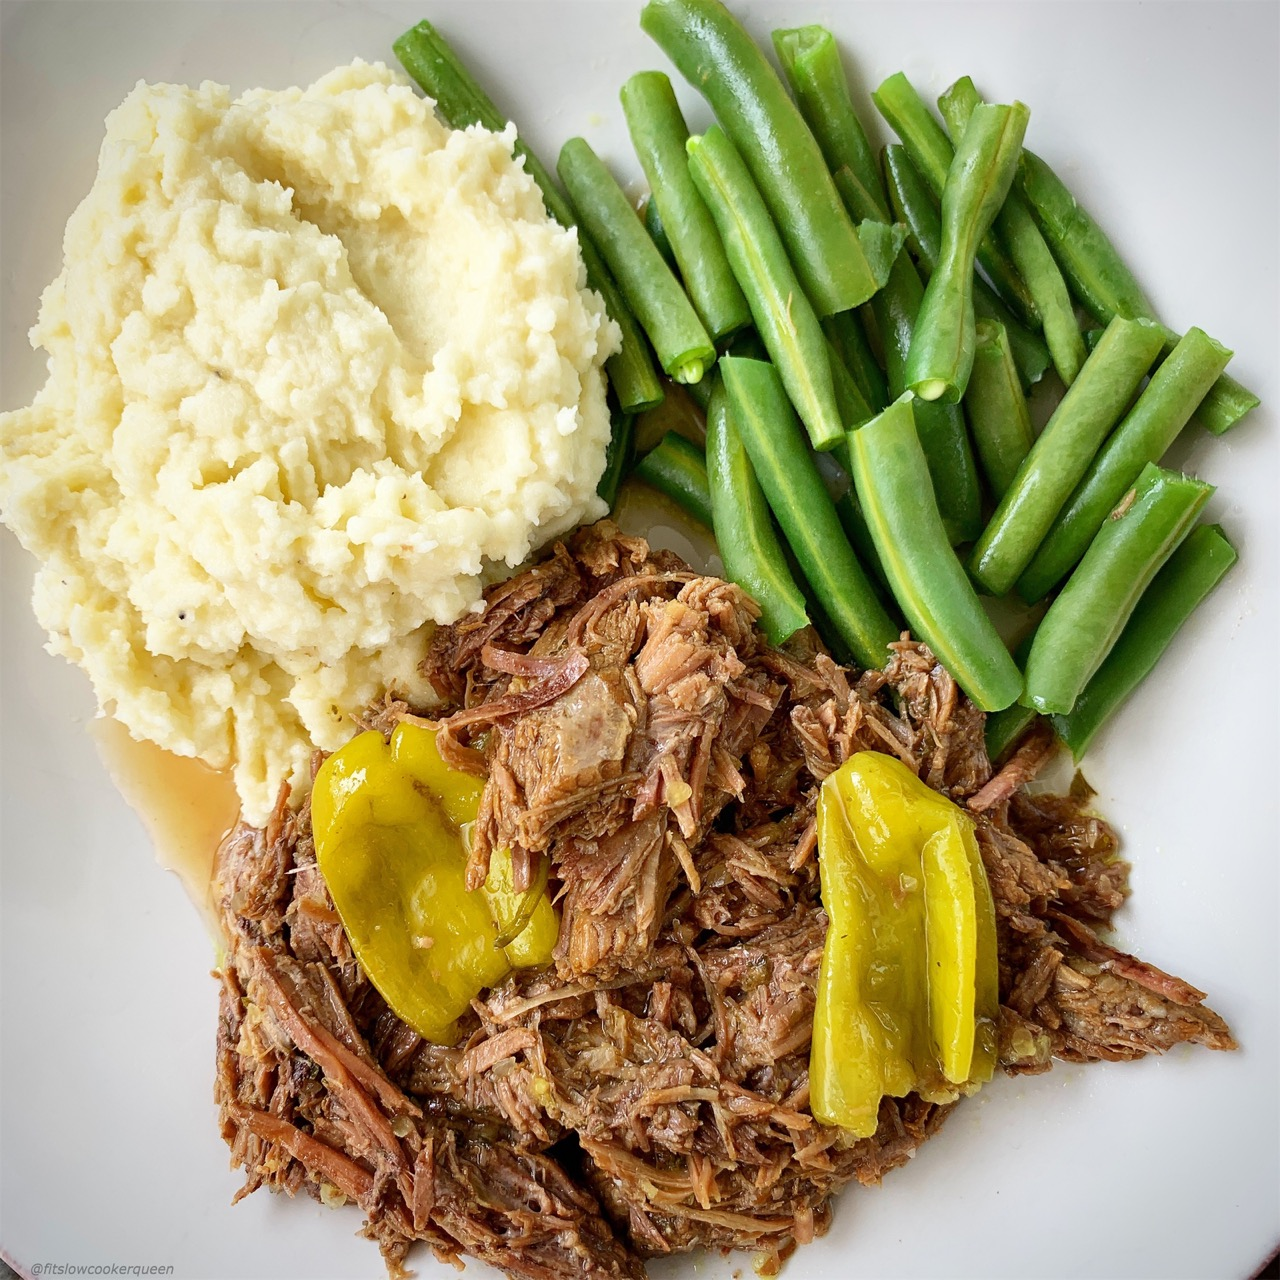 This cleaned up version of Mississippi roast low-carb, paleo, and whole30 but not lacking the flavor that made this recipe popular in the first place.